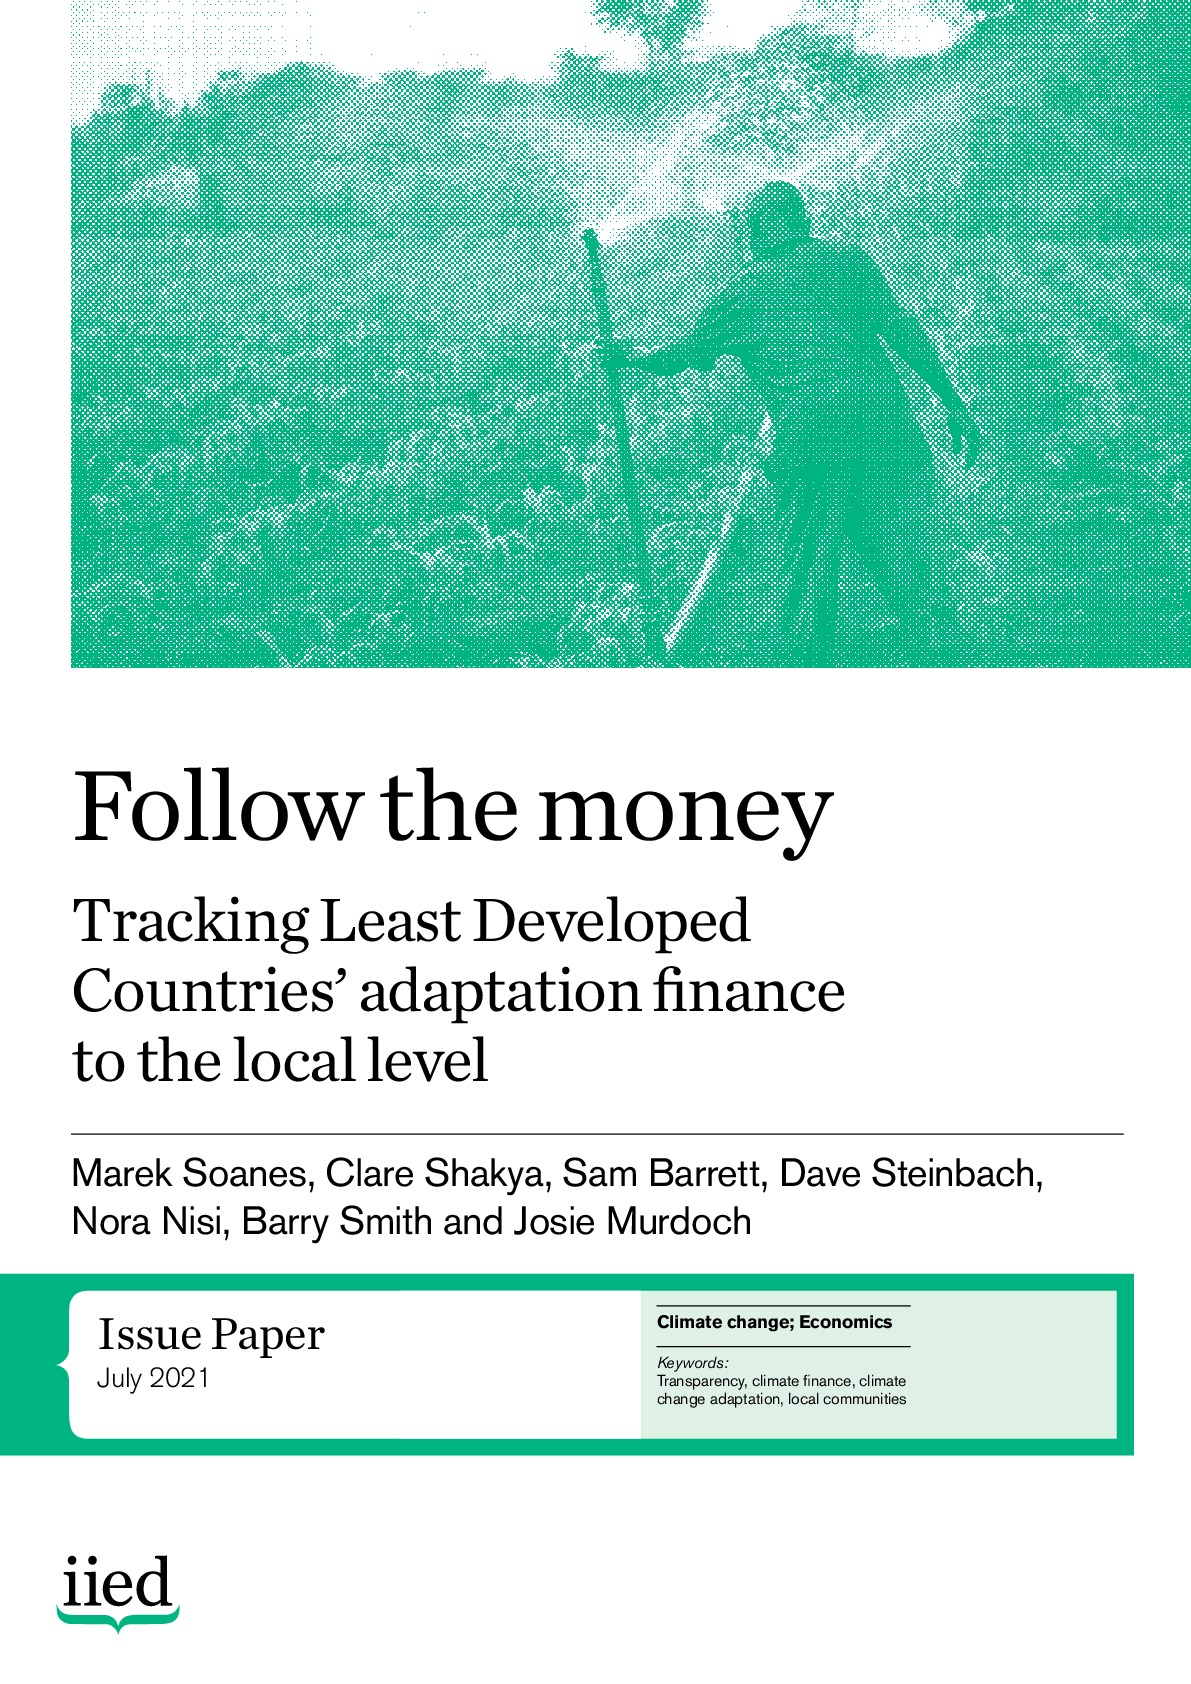 Follow the money: tracking Least Developed  Countries' adaptation finance to the local level